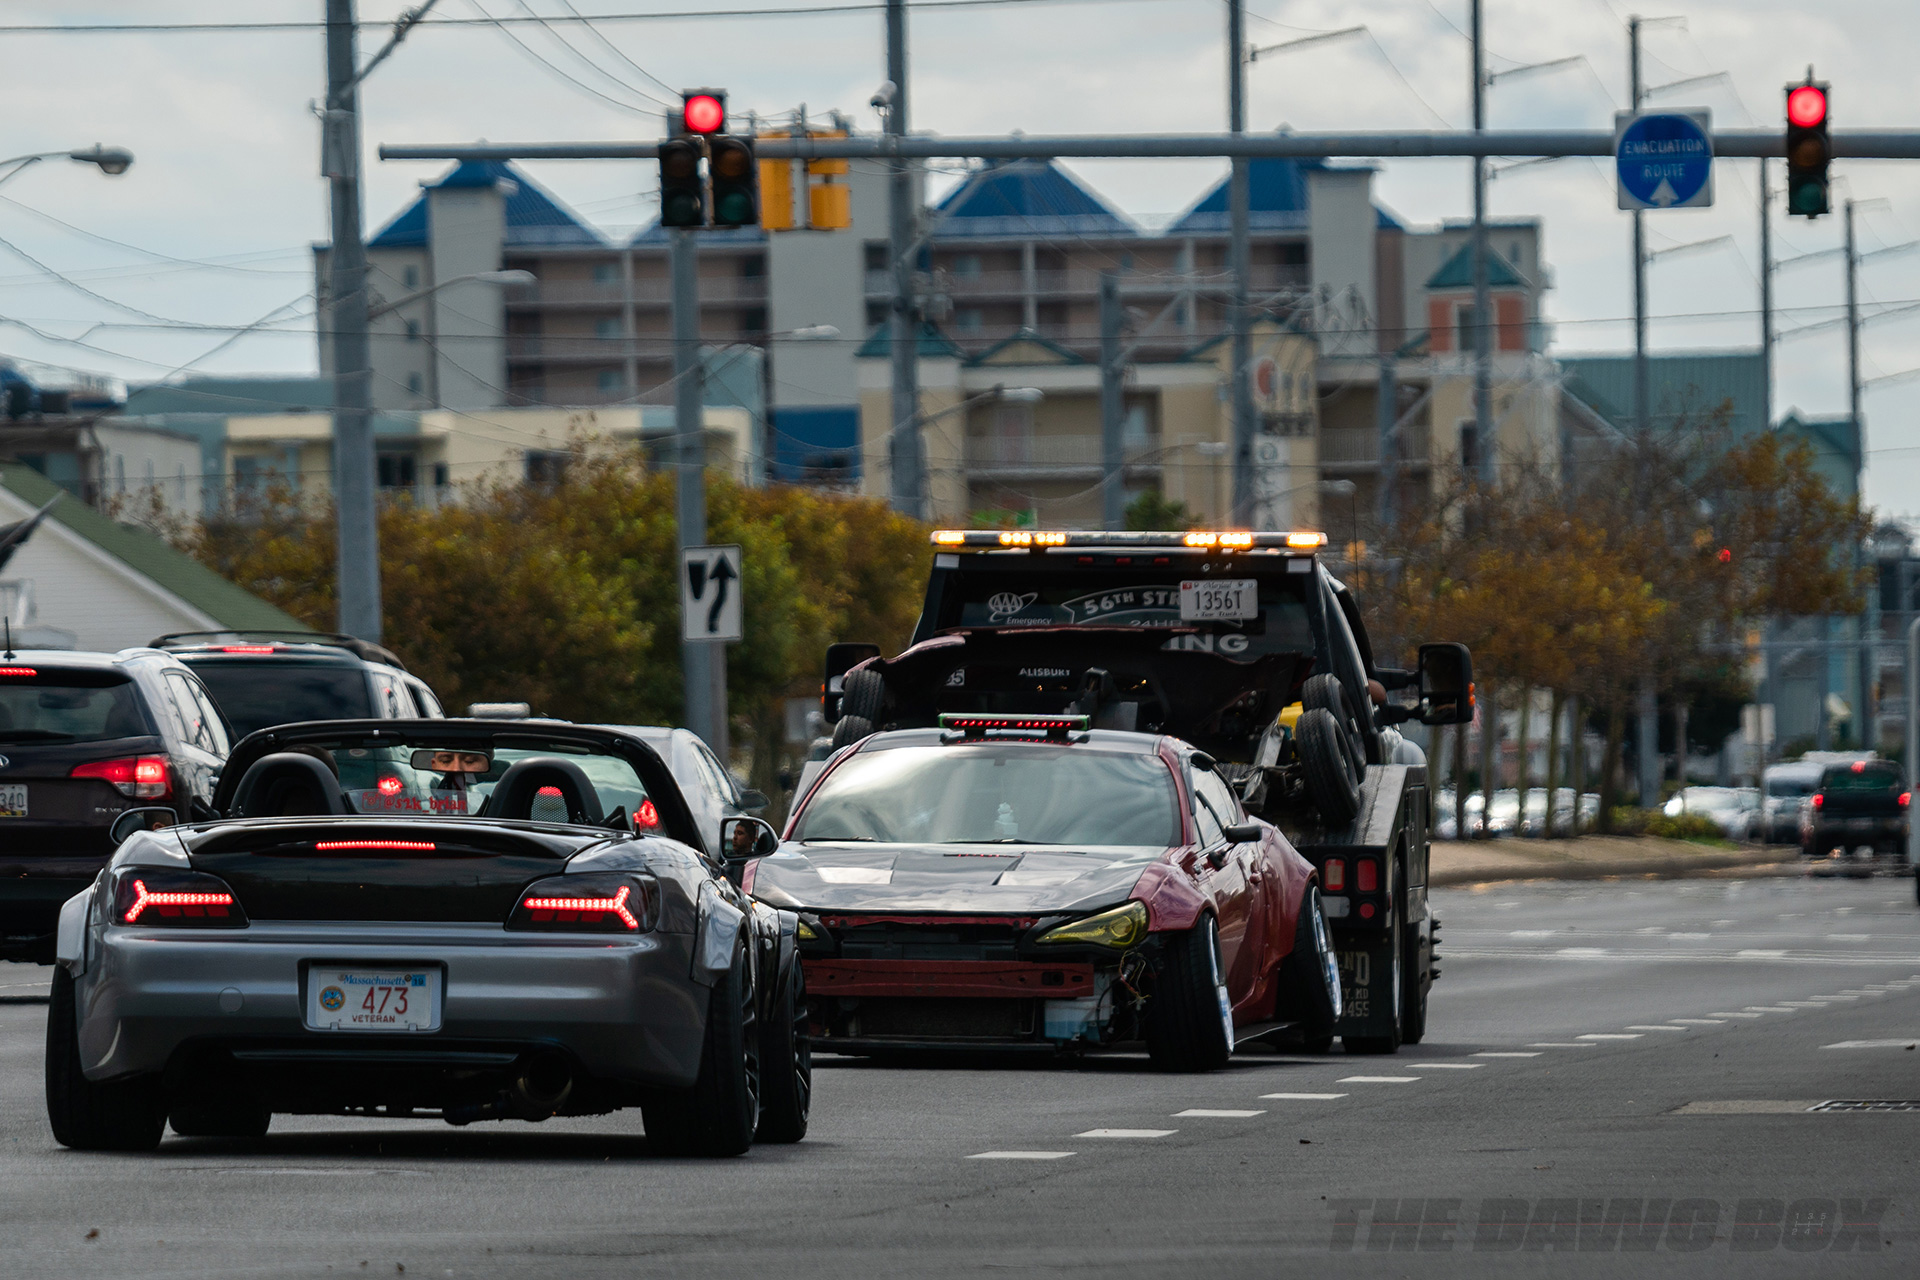 FRS towed at H2Oi by the cops